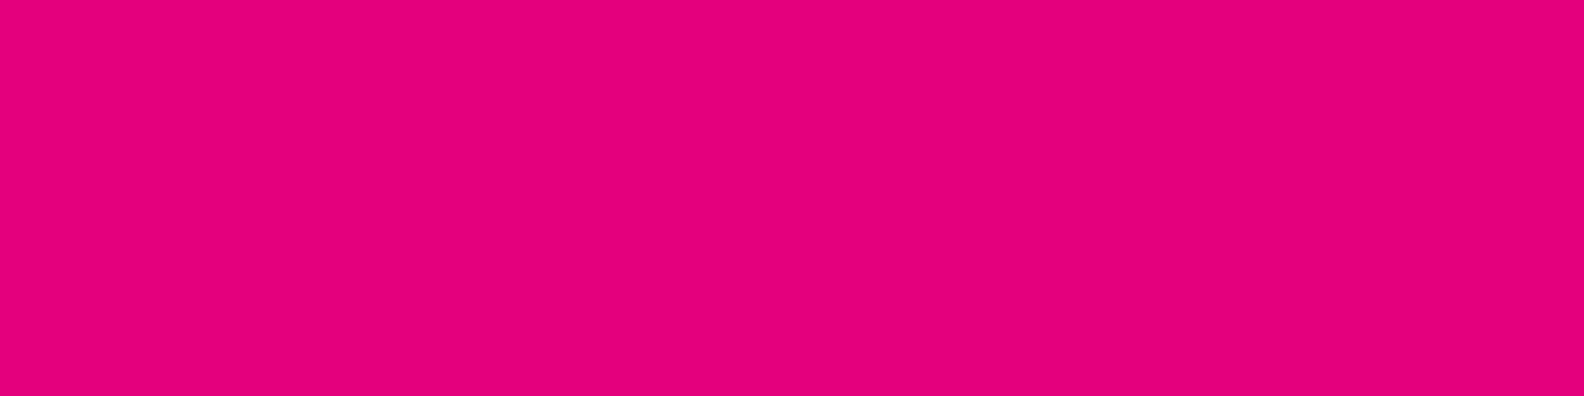 1584x396 Mexican Pink Solid Color Background